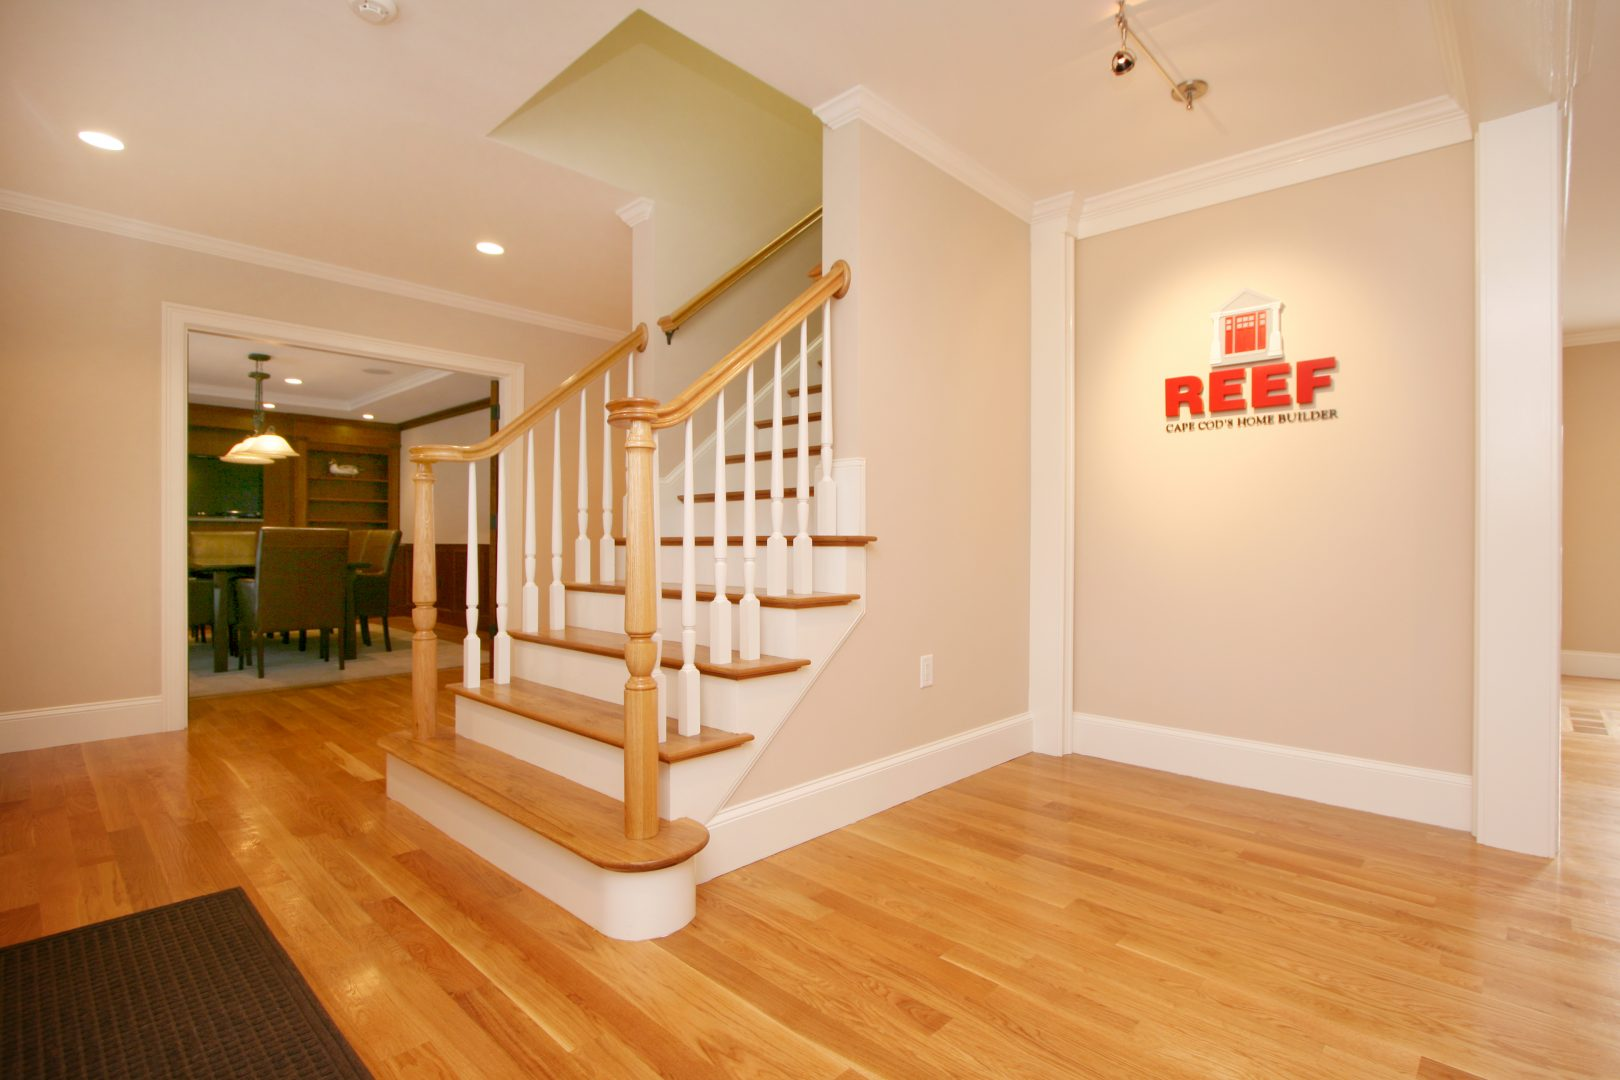 Cape Cod Builder, REEF, Custom Homes